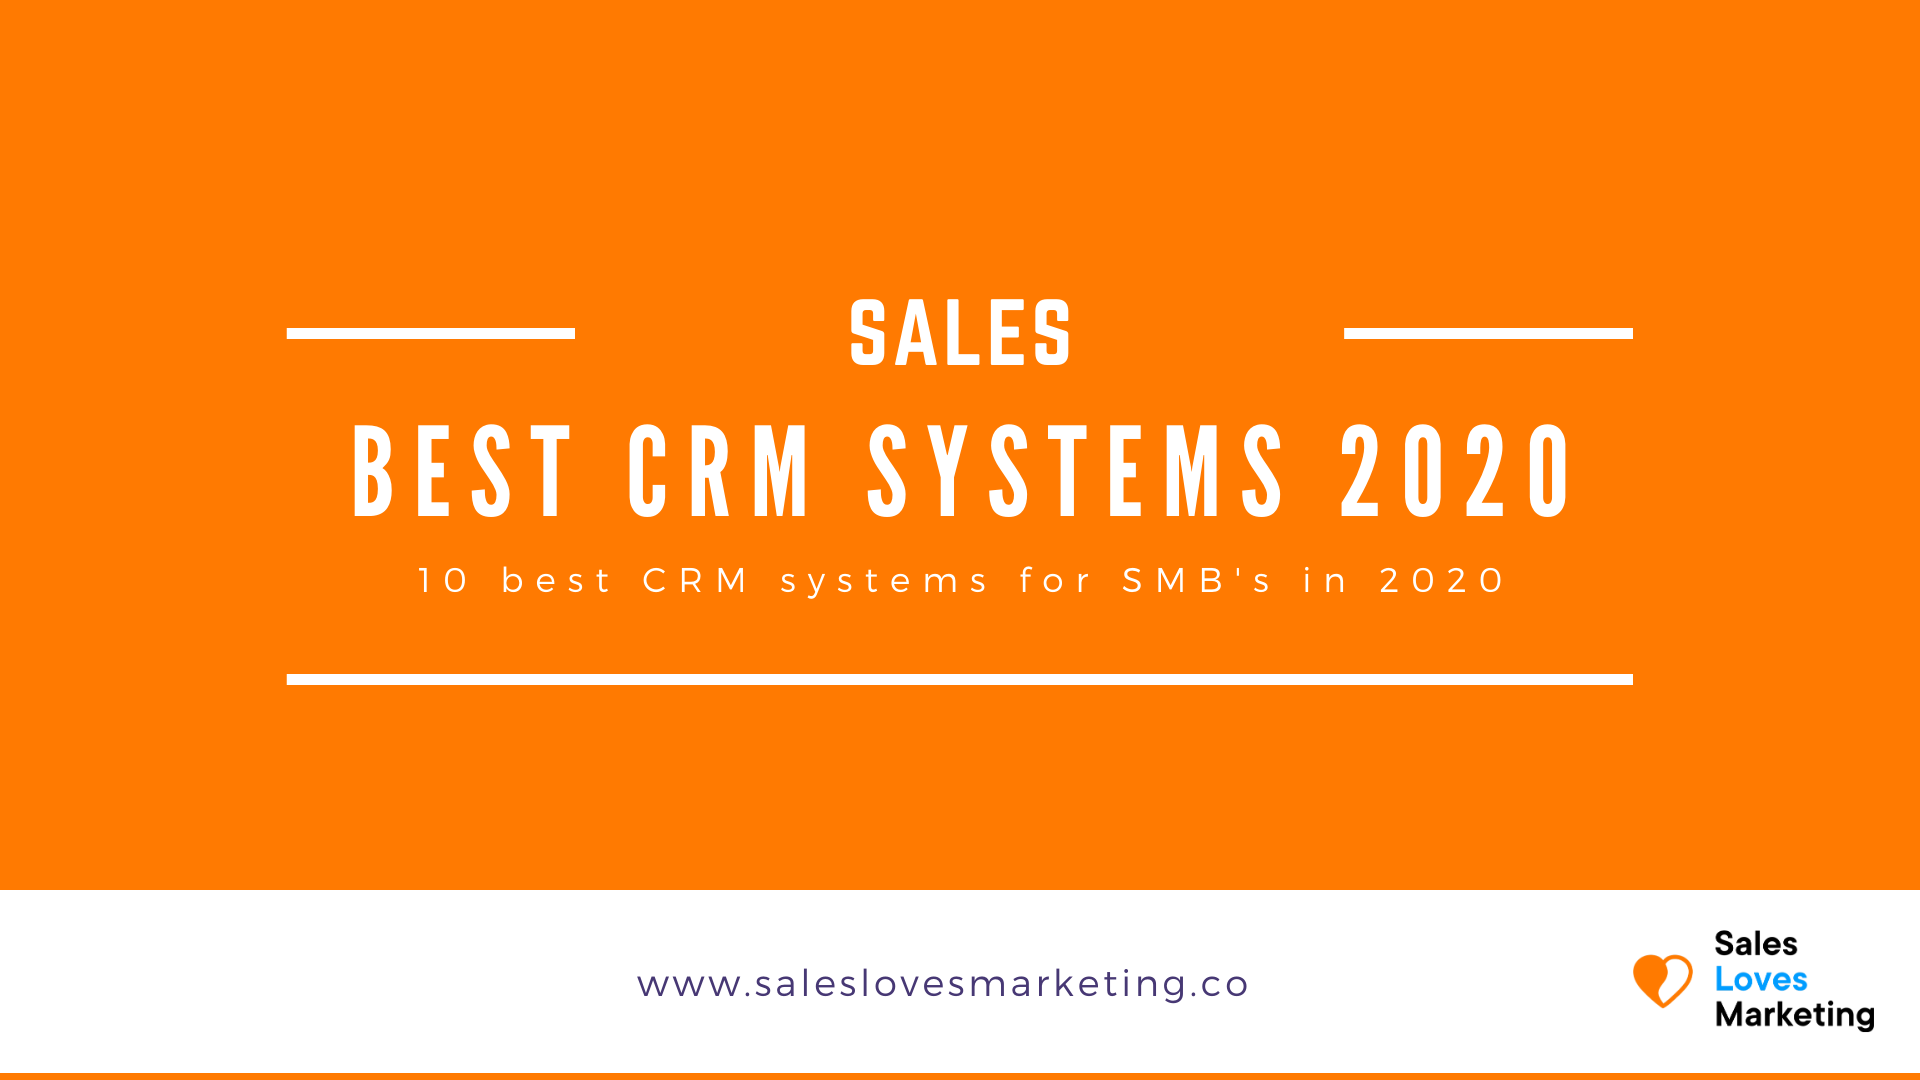 What are the best CRM systems for SMB